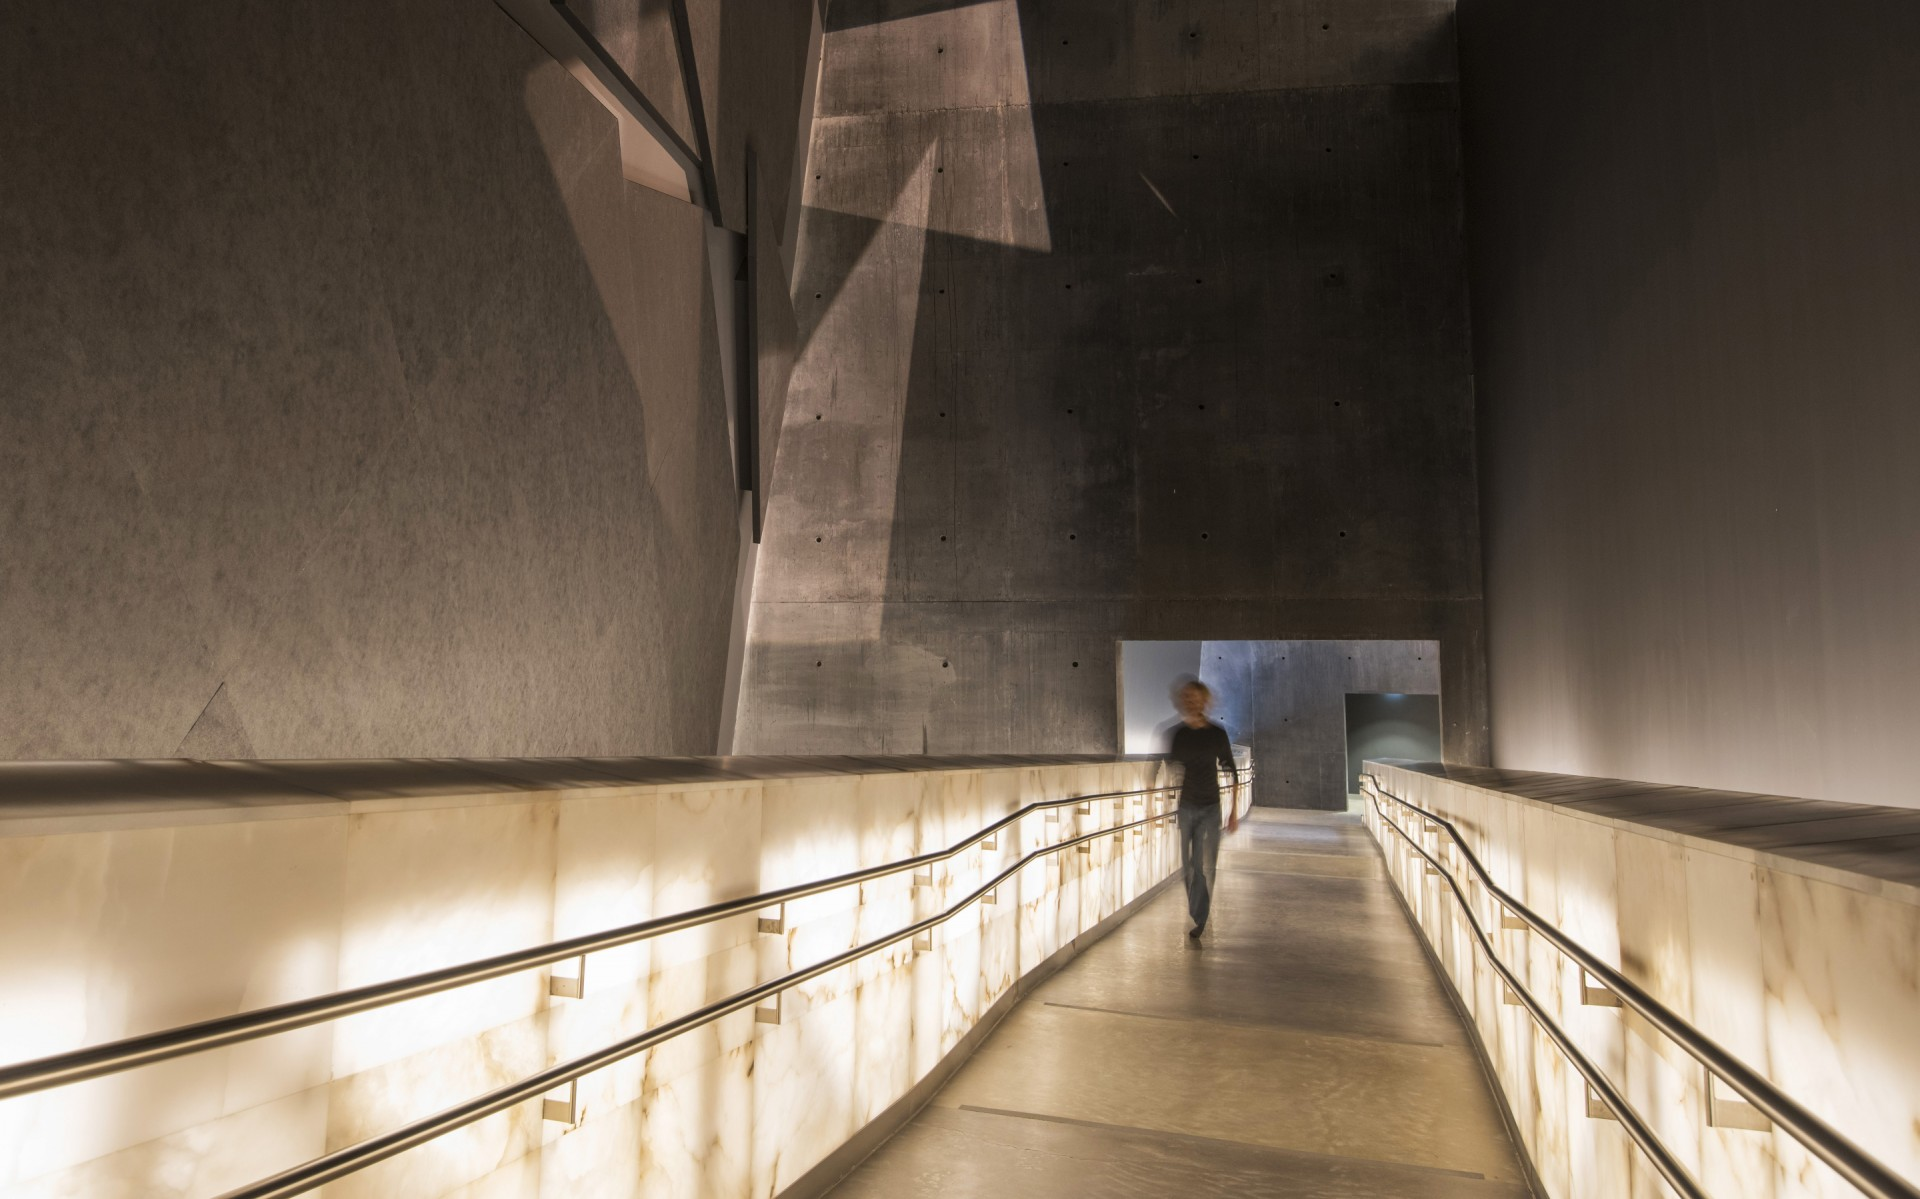 The ramps are uniformly, internally illuminated, a challenge given the density of the alabaster.